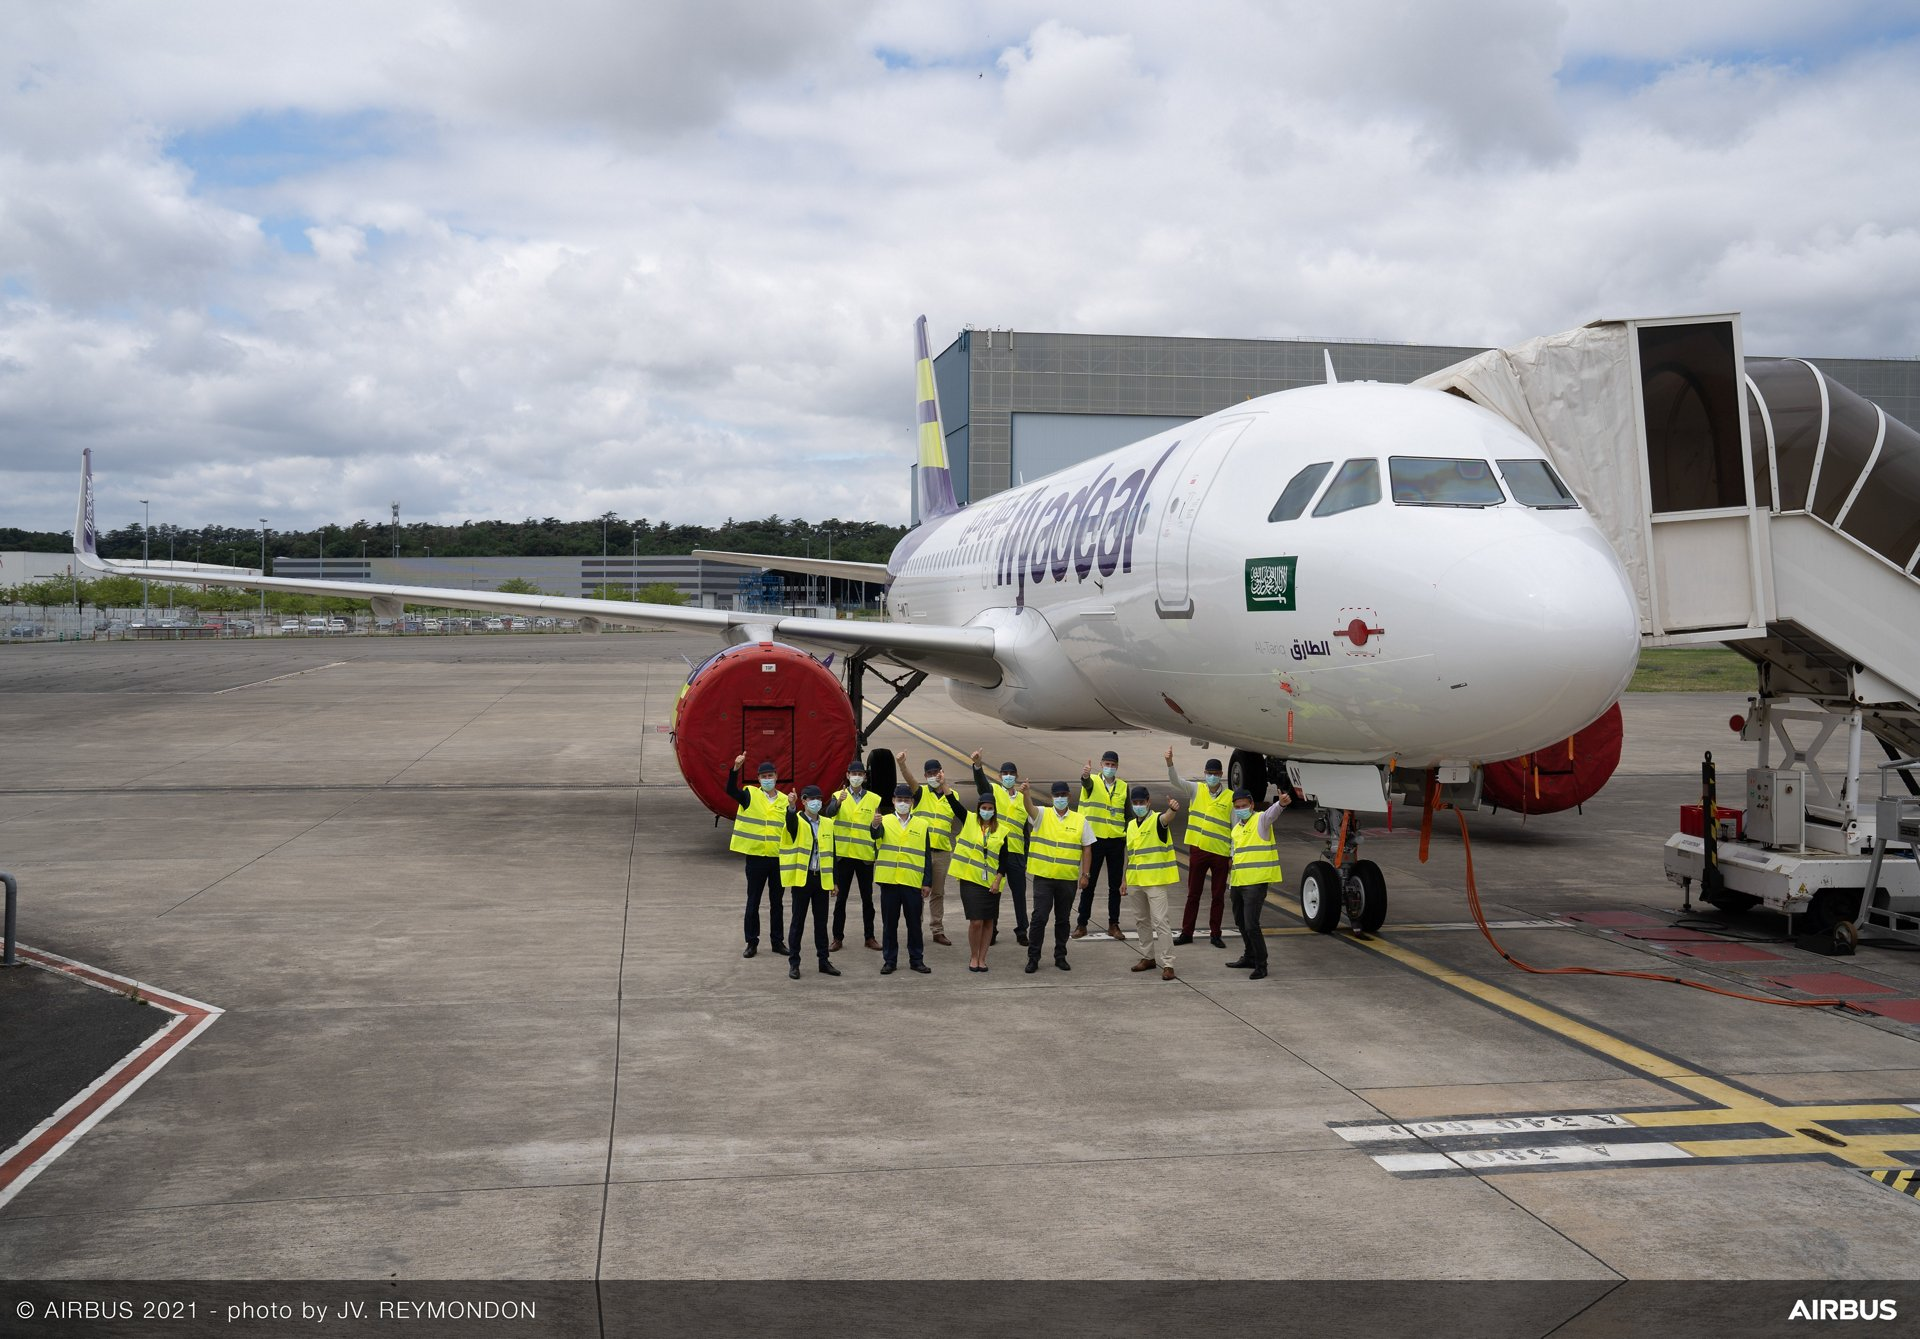 flyadeal, the low-cost Jeddah-based airline owned by Saudi Arabian Airlines, signed a long-term Flight Hour Services (FHS) agreement to support its A320 fleet.